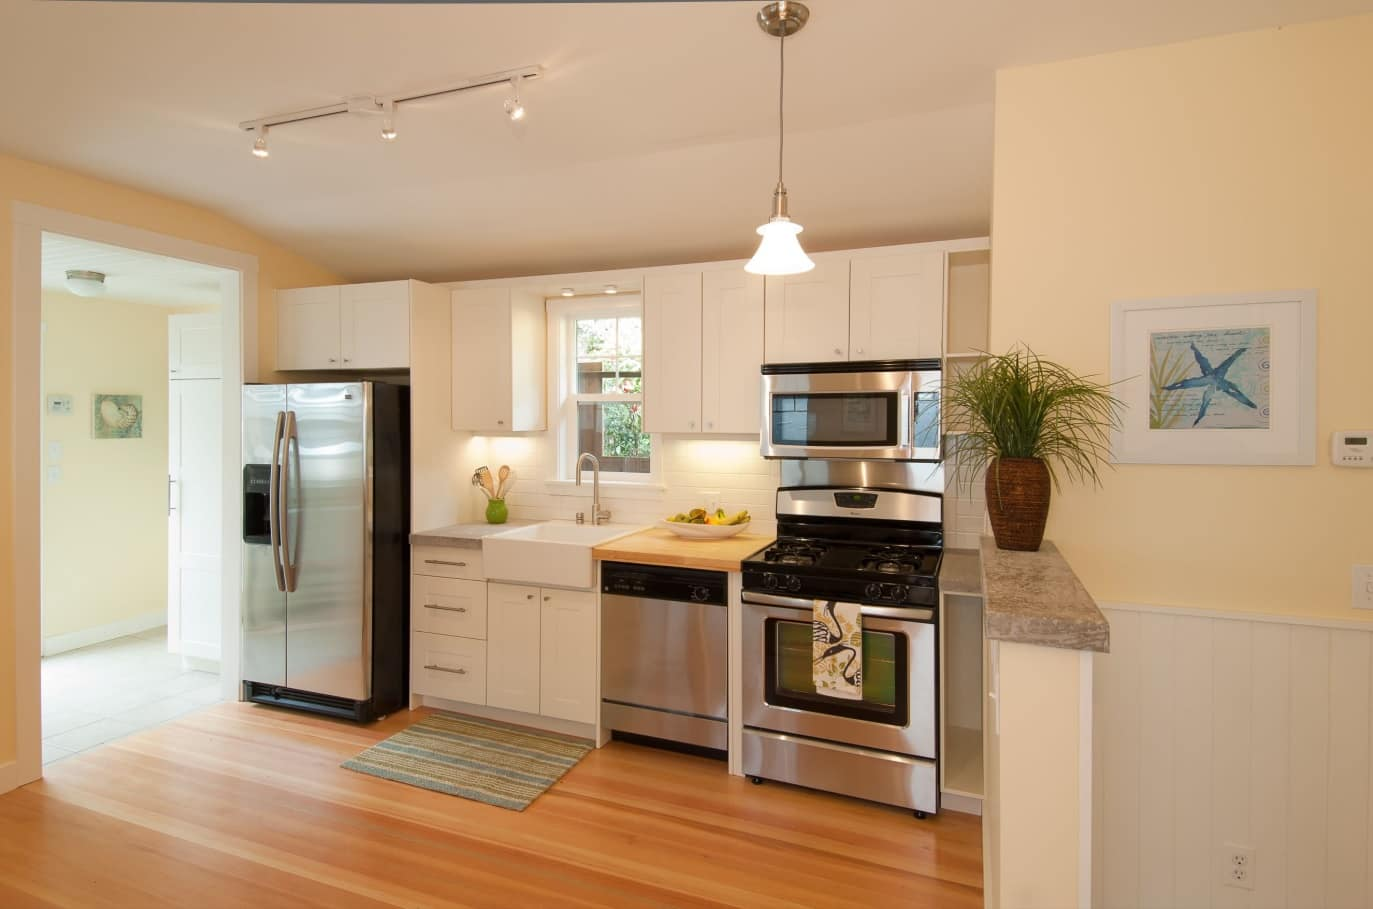 Seasonal Cleaning Tips. Great neat kitchen design with hardwood floor and steel surfaces of appliances